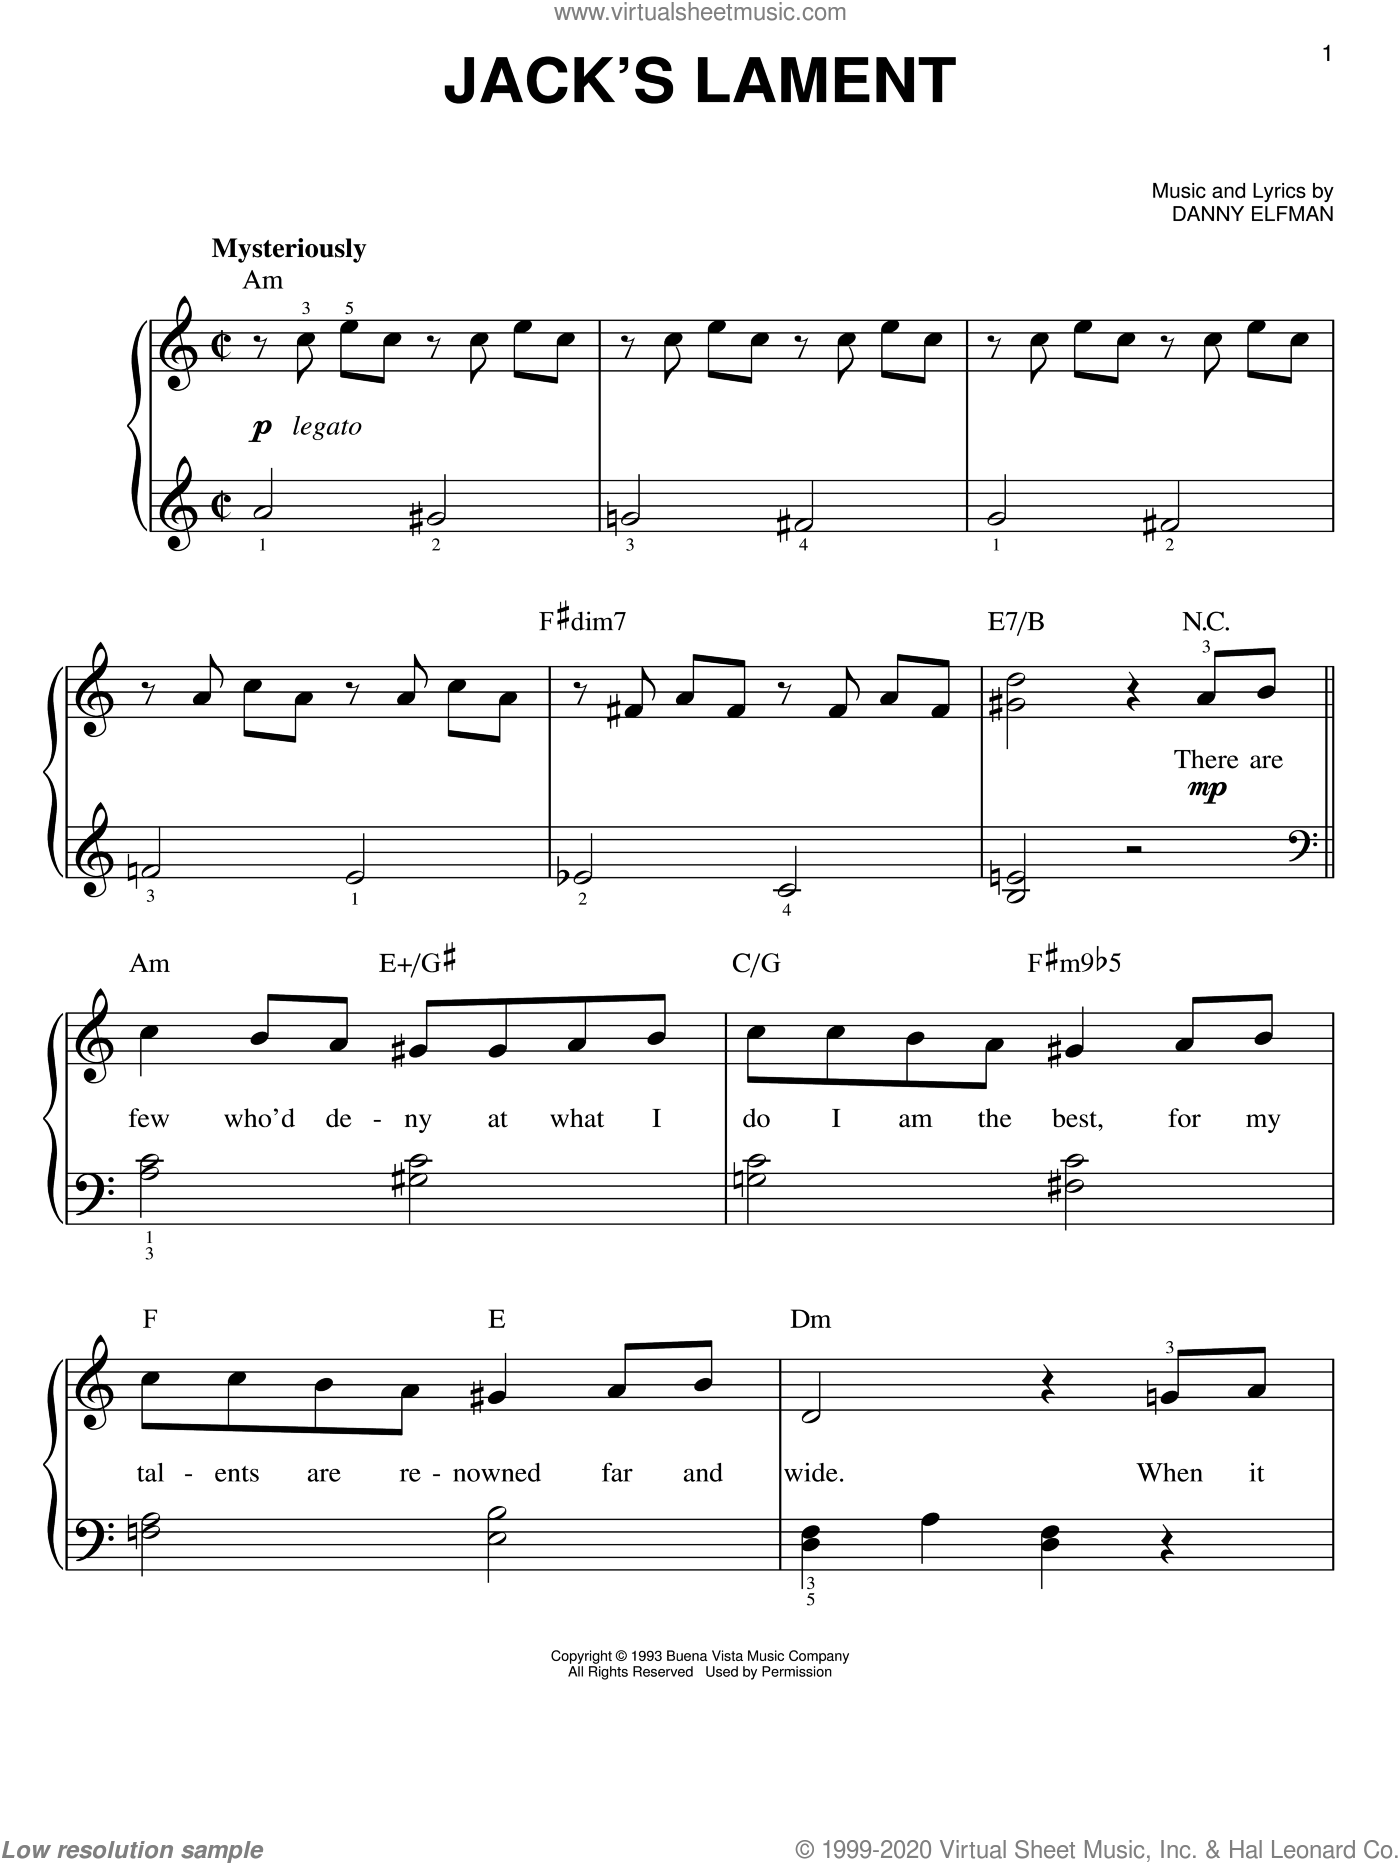 Jack's Lament sheet music for piano solo by Danny Elfman. Score Image Preview.